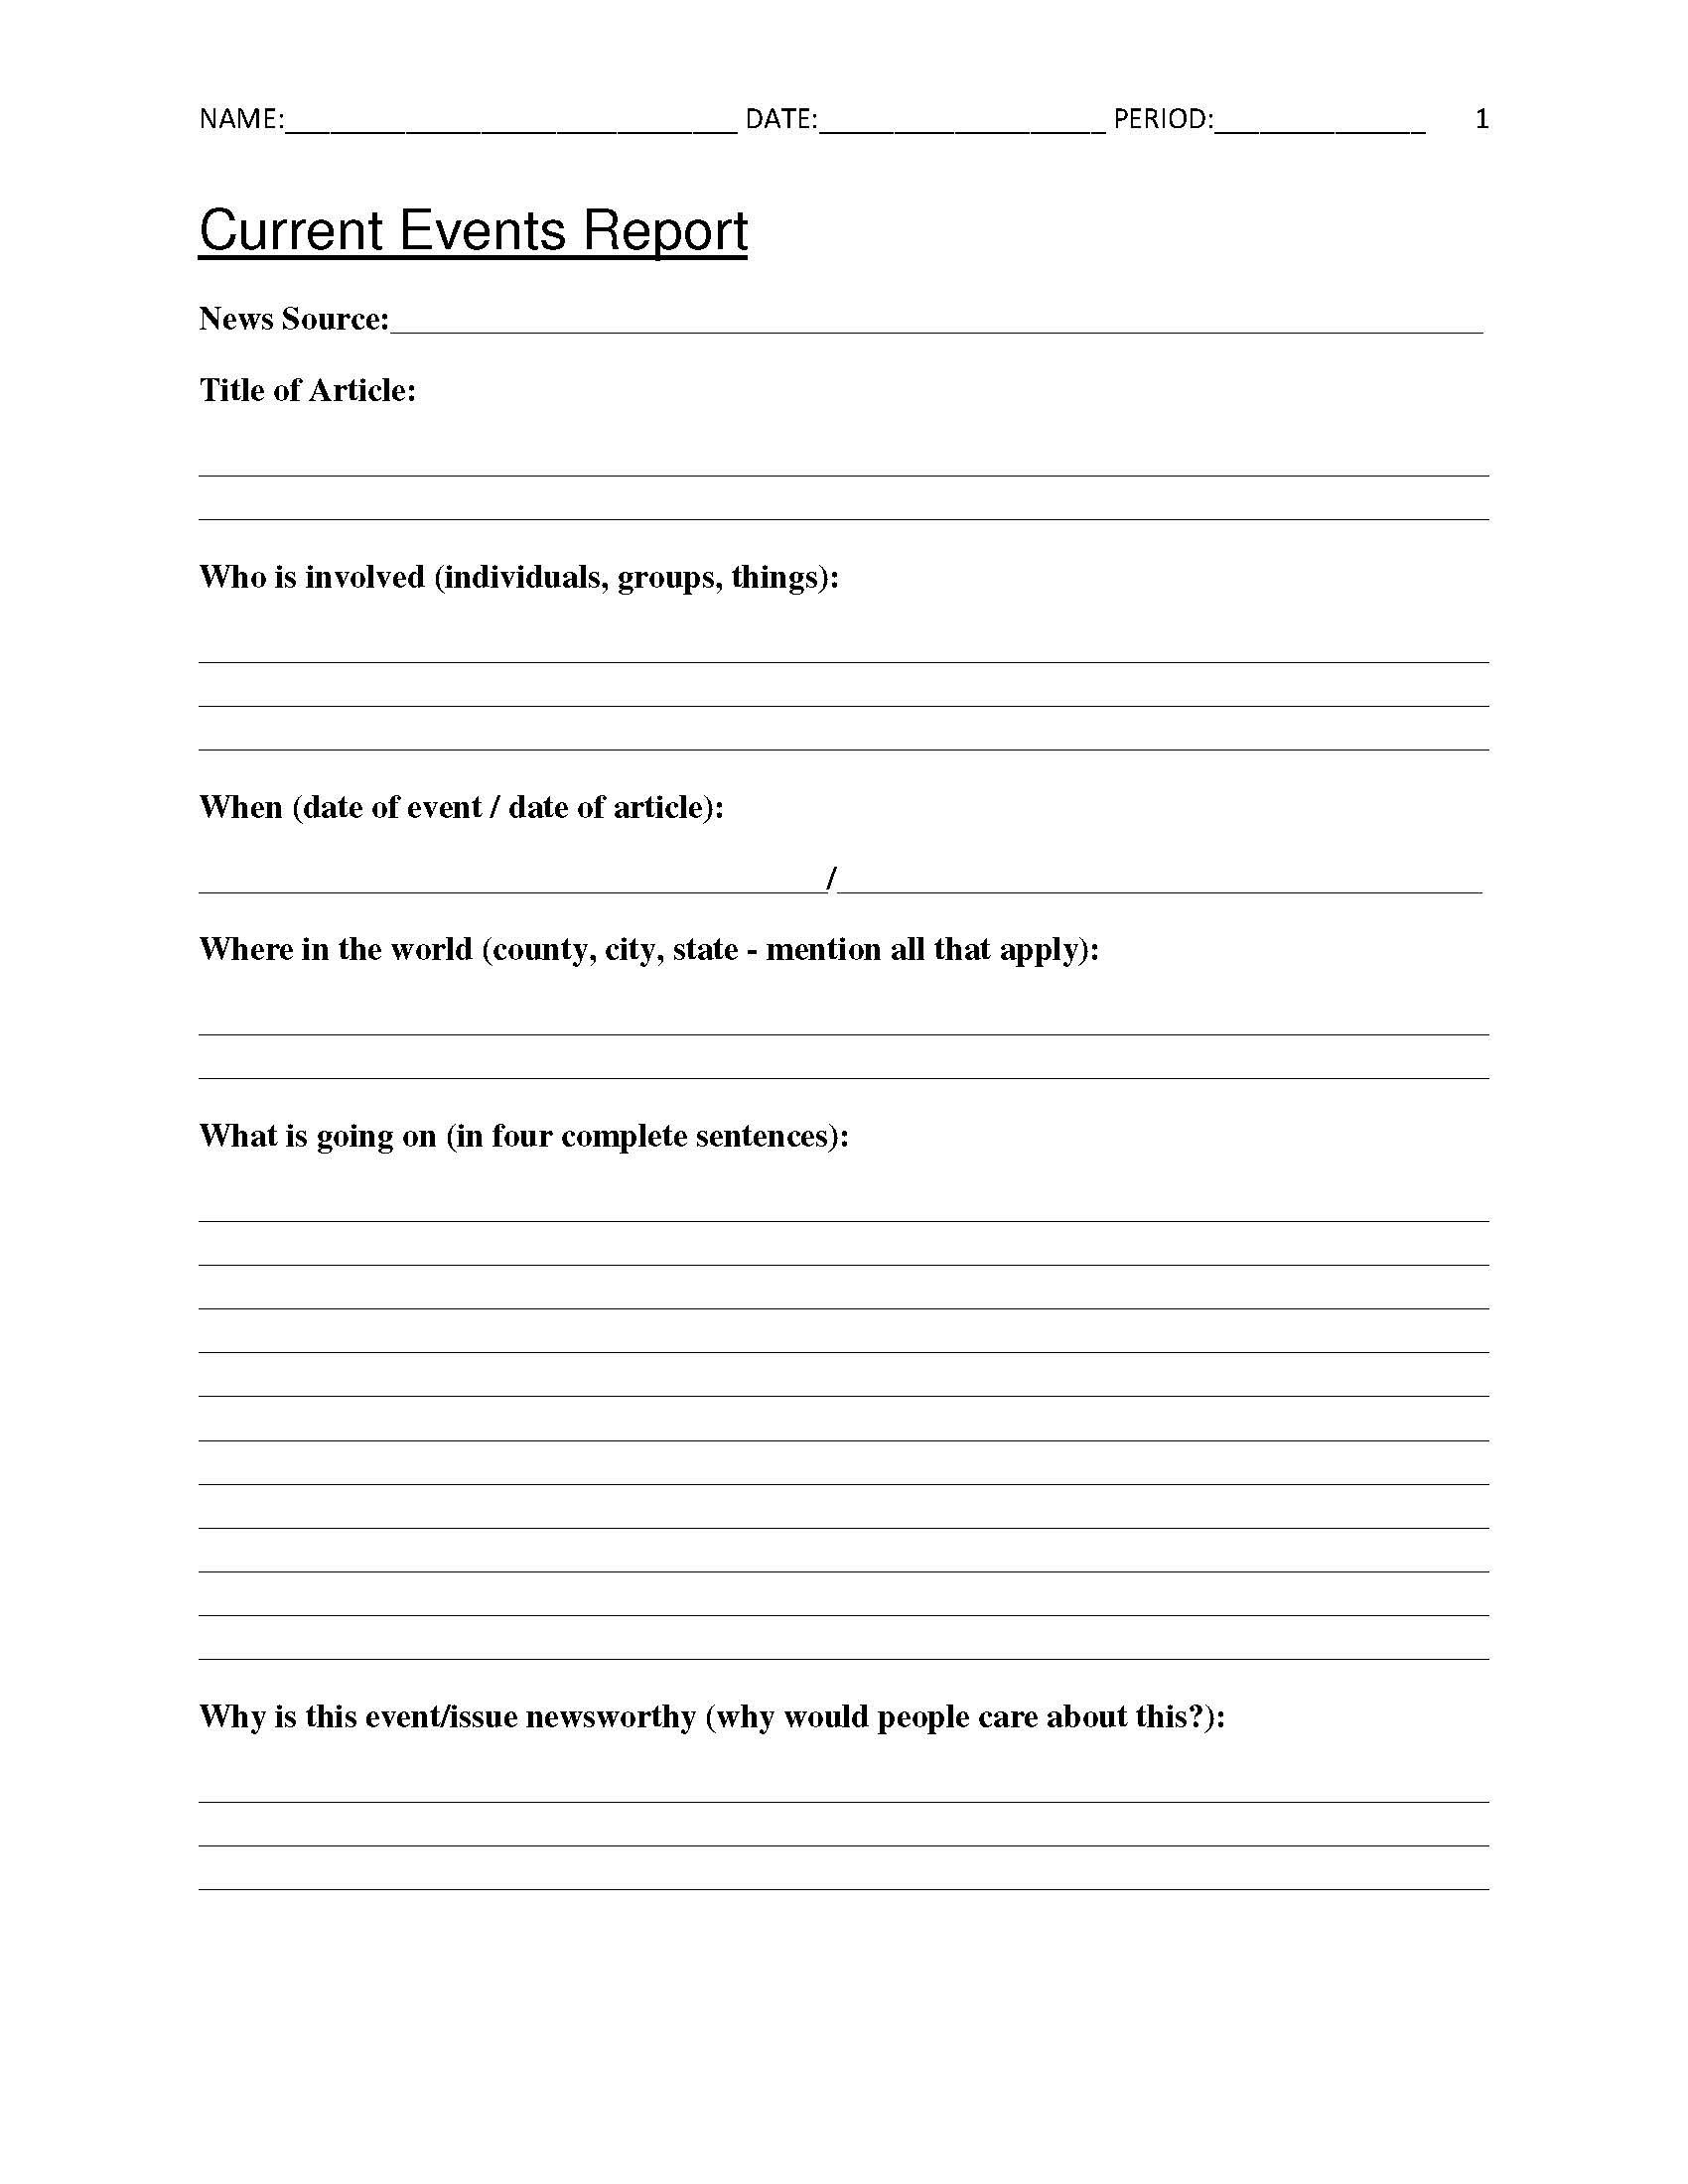 Free Current Events Report Worksheet For Classroom Teachers - 9Th Grade Science Worksheets Free Printable